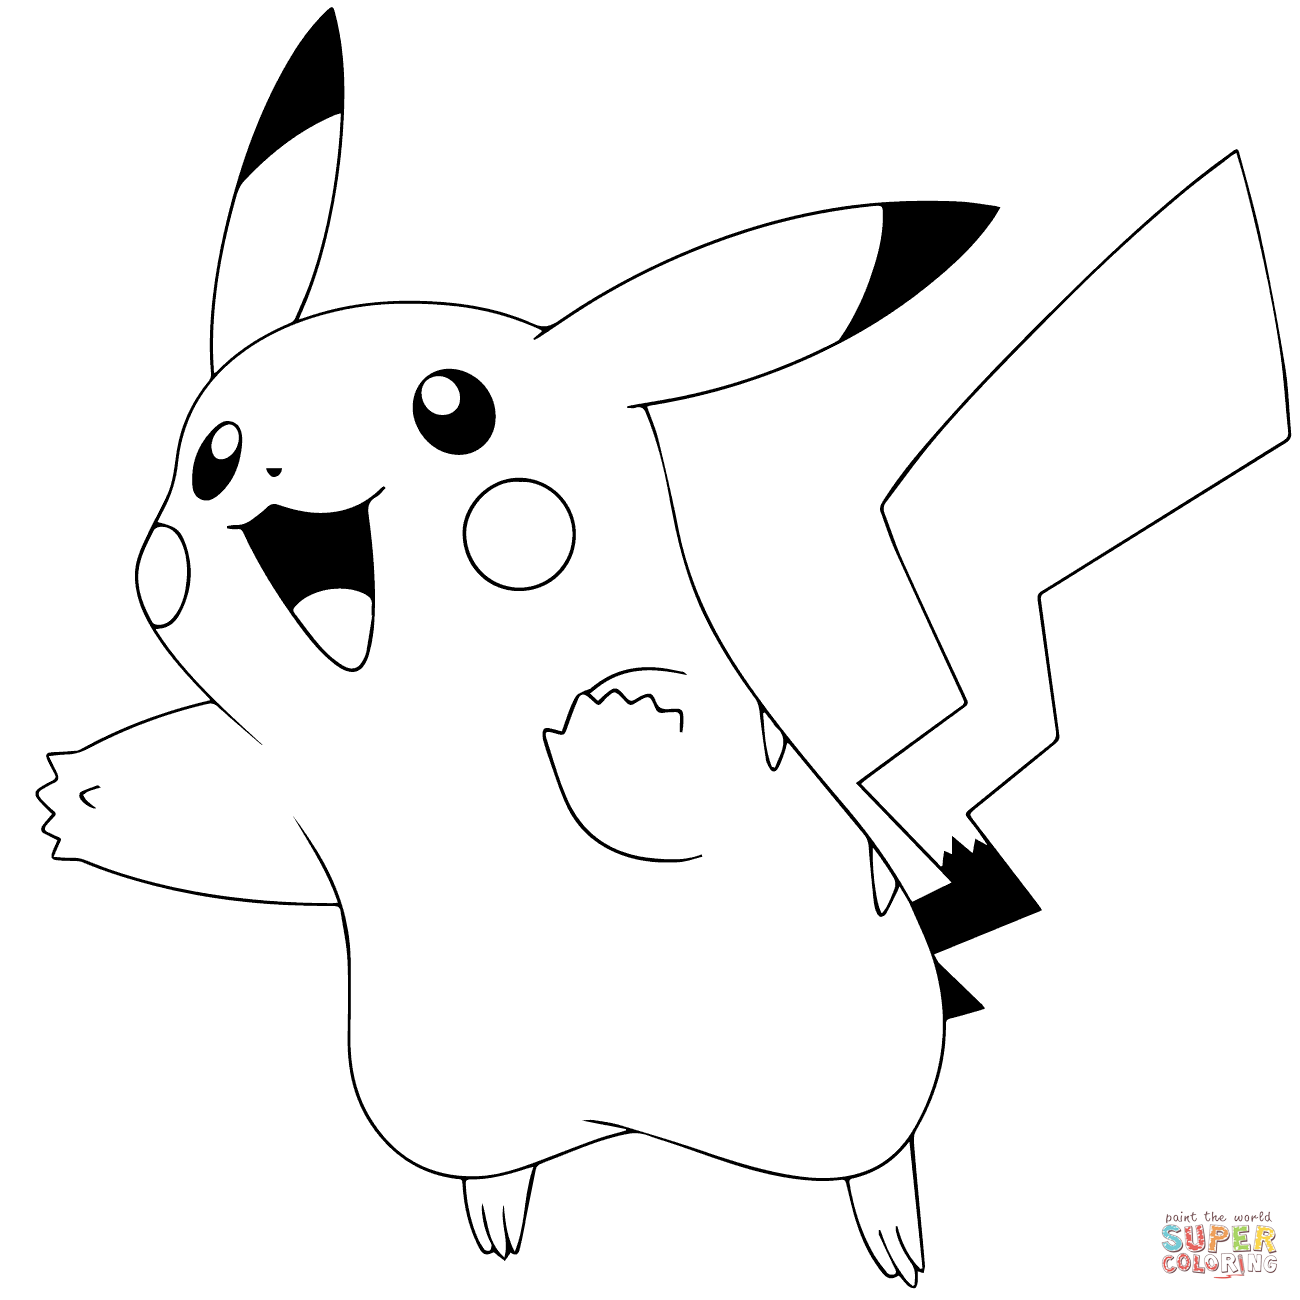 Pikachu Clipart Colouring Page Pikachu Colouring Page Transparent